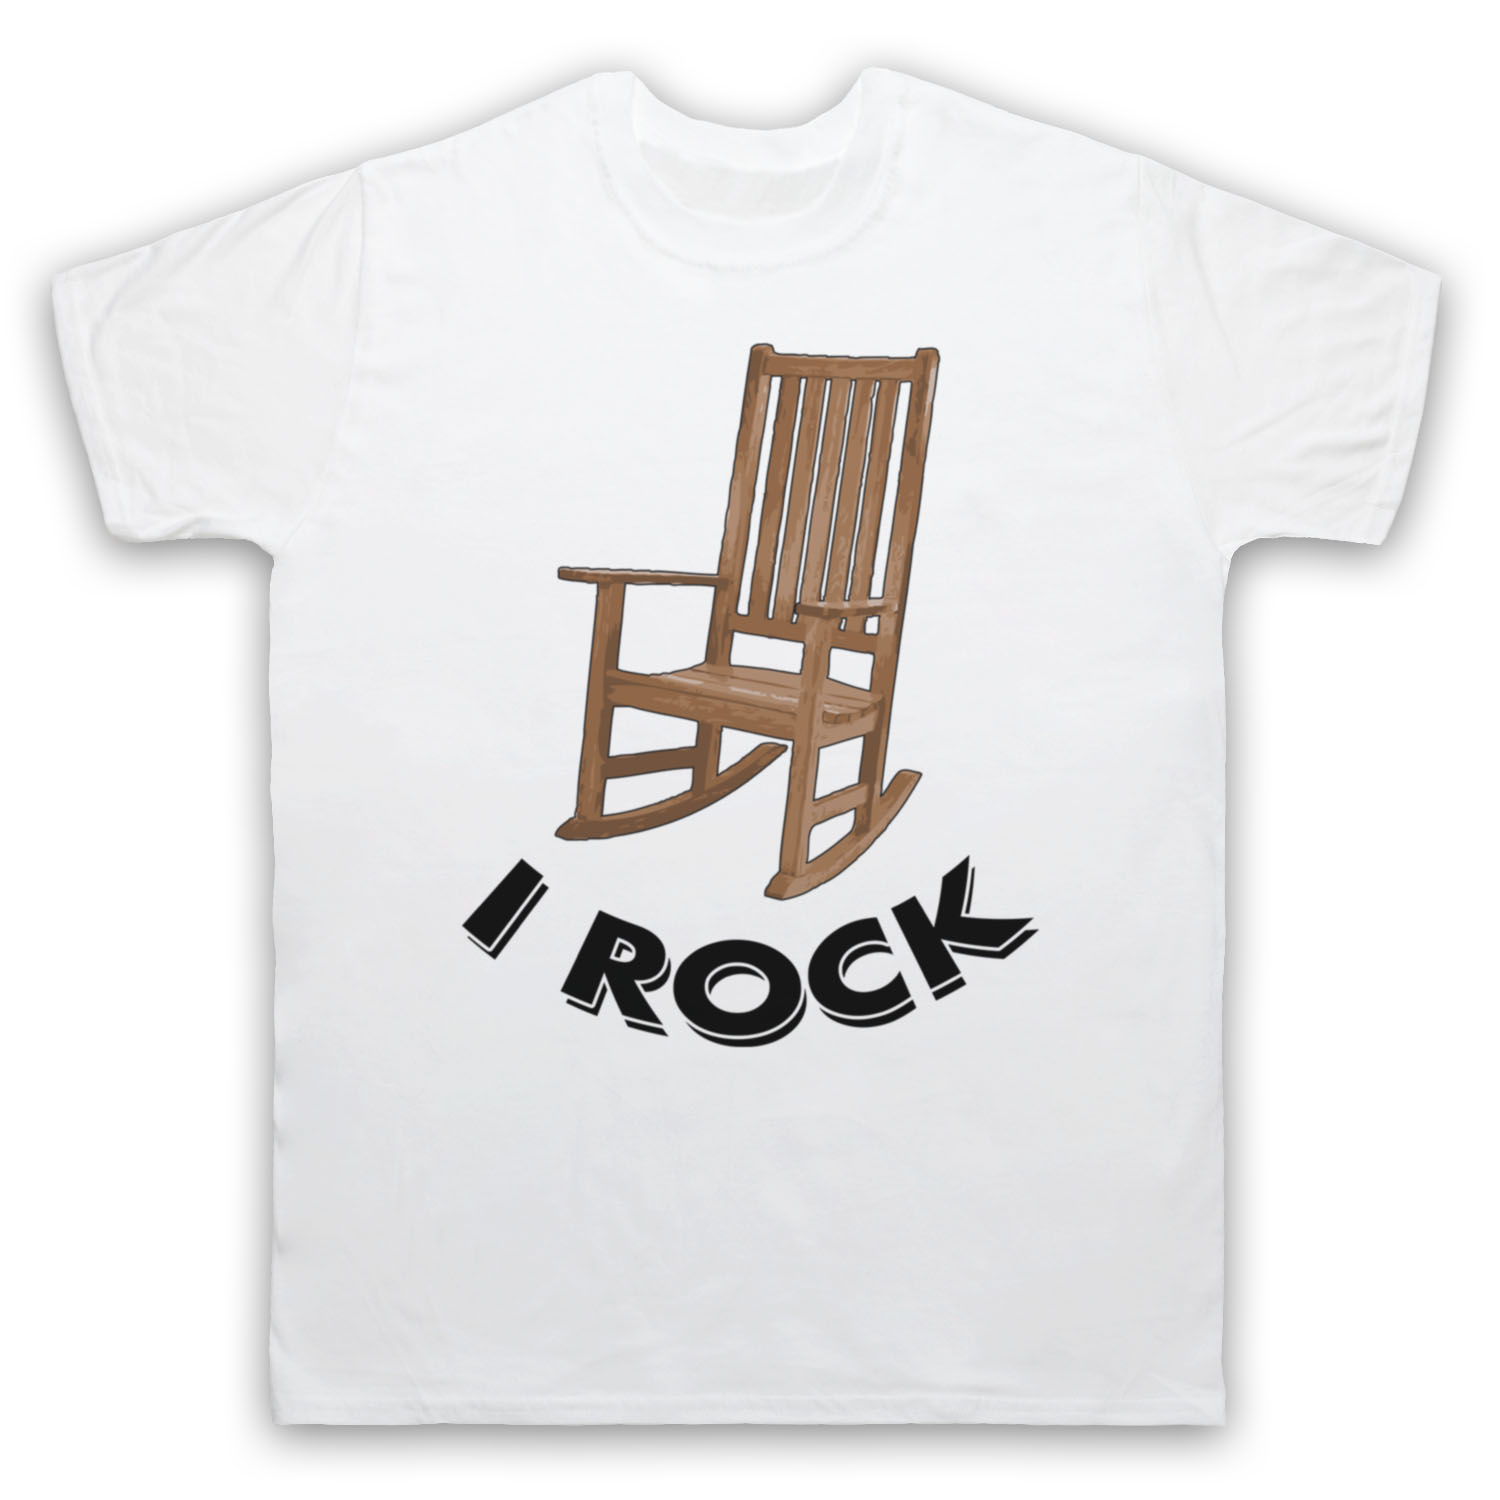 5e78a37ee I ROCK ROCKING CHAIR FUNNY COMEDY JOKE PUN COOL CUTE MENS WOMENS KIDS T  SHIRT Short Sleeves Cotton T Shirt Free Shipping-in T-Shirts from Men's  Clothing on ...